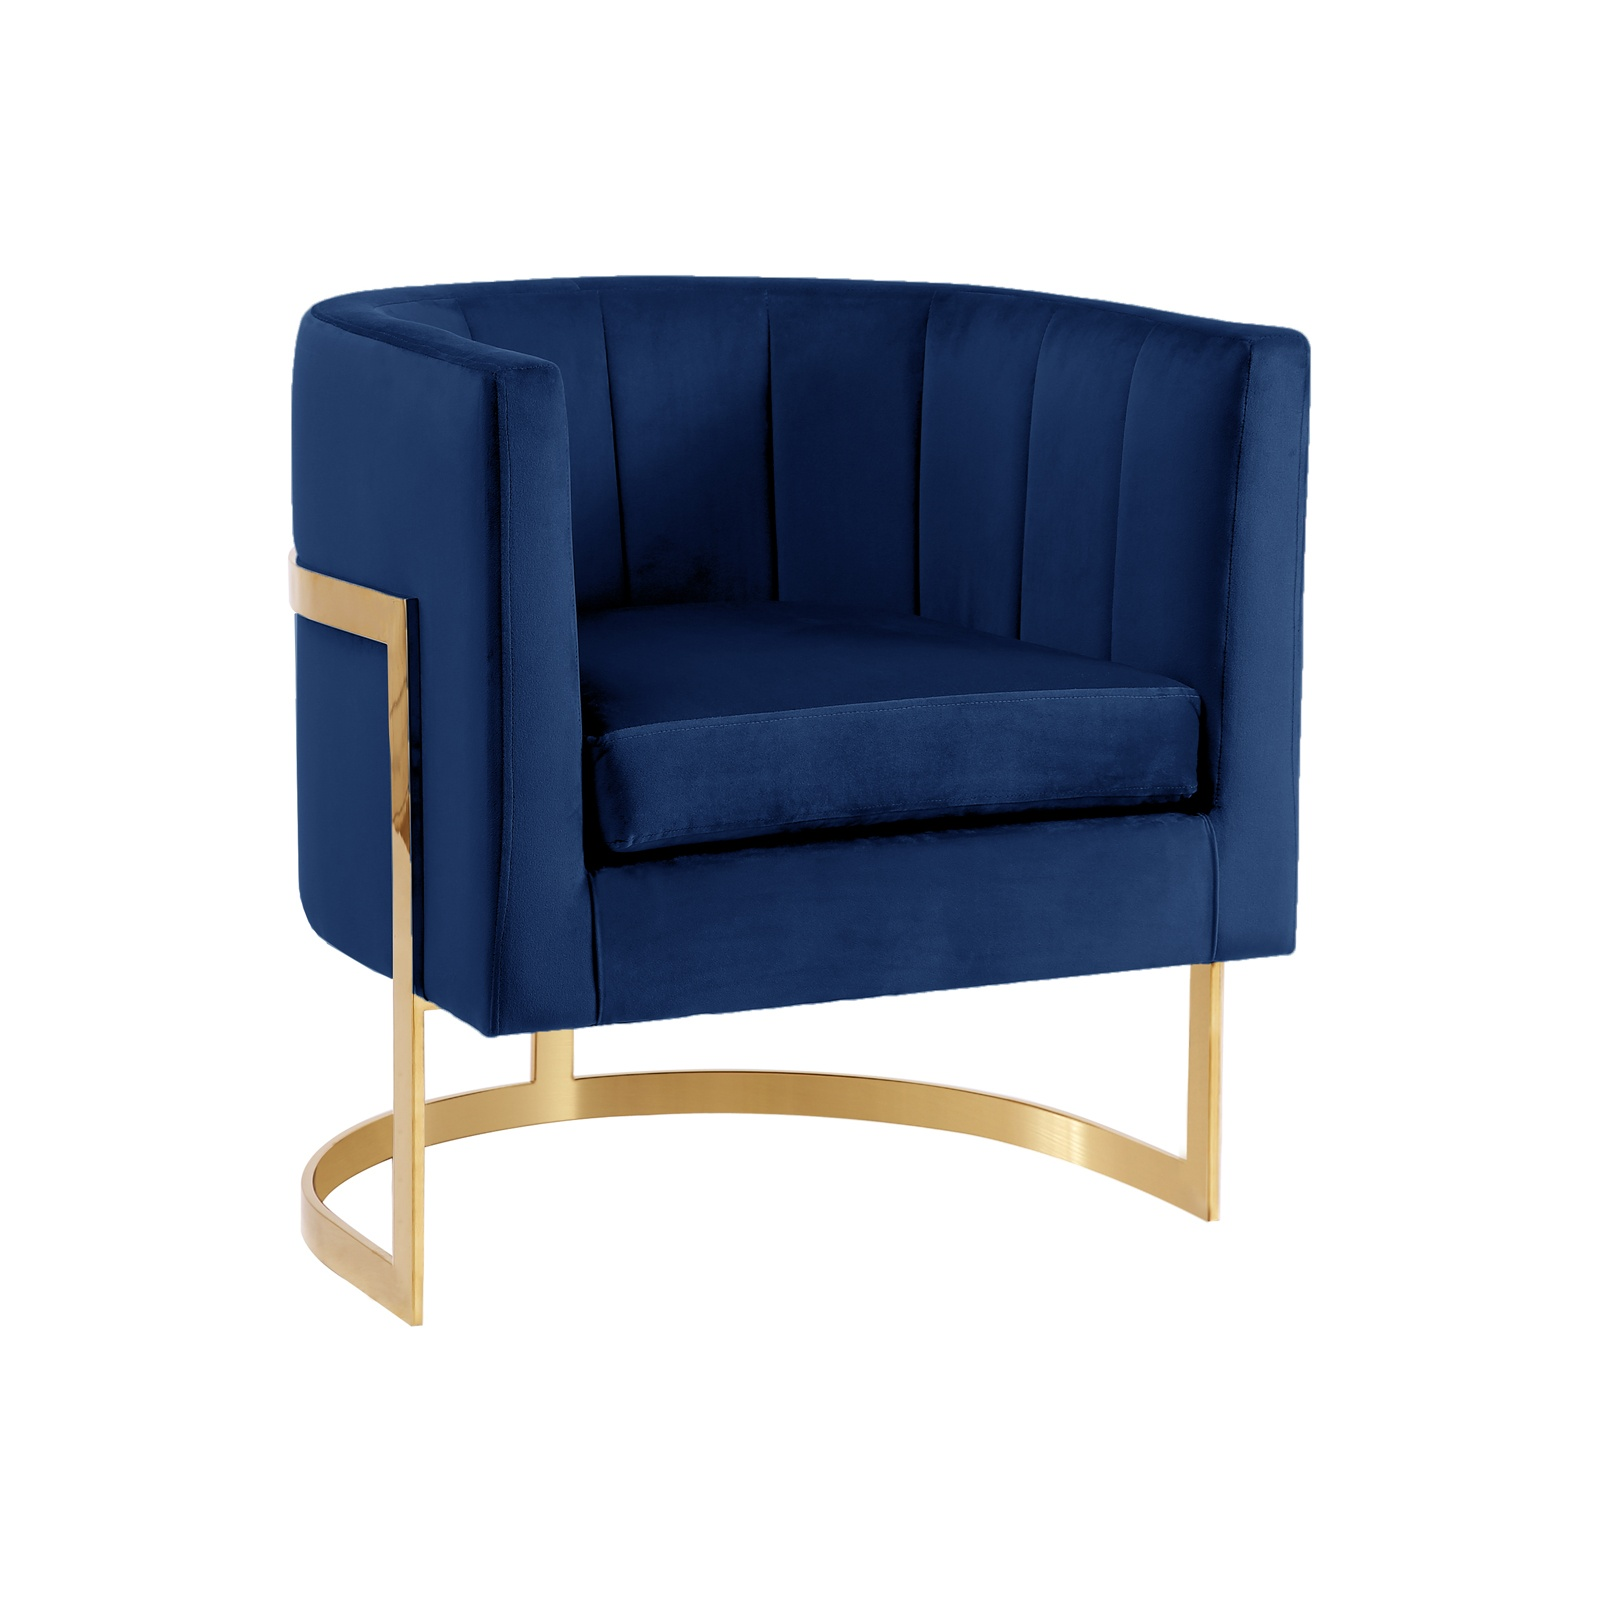 Cool Calla Lounge Chair Navy Event Trade Show Furniture Ocoug Best Dining Table And Chair Ideas Images Ocougorg